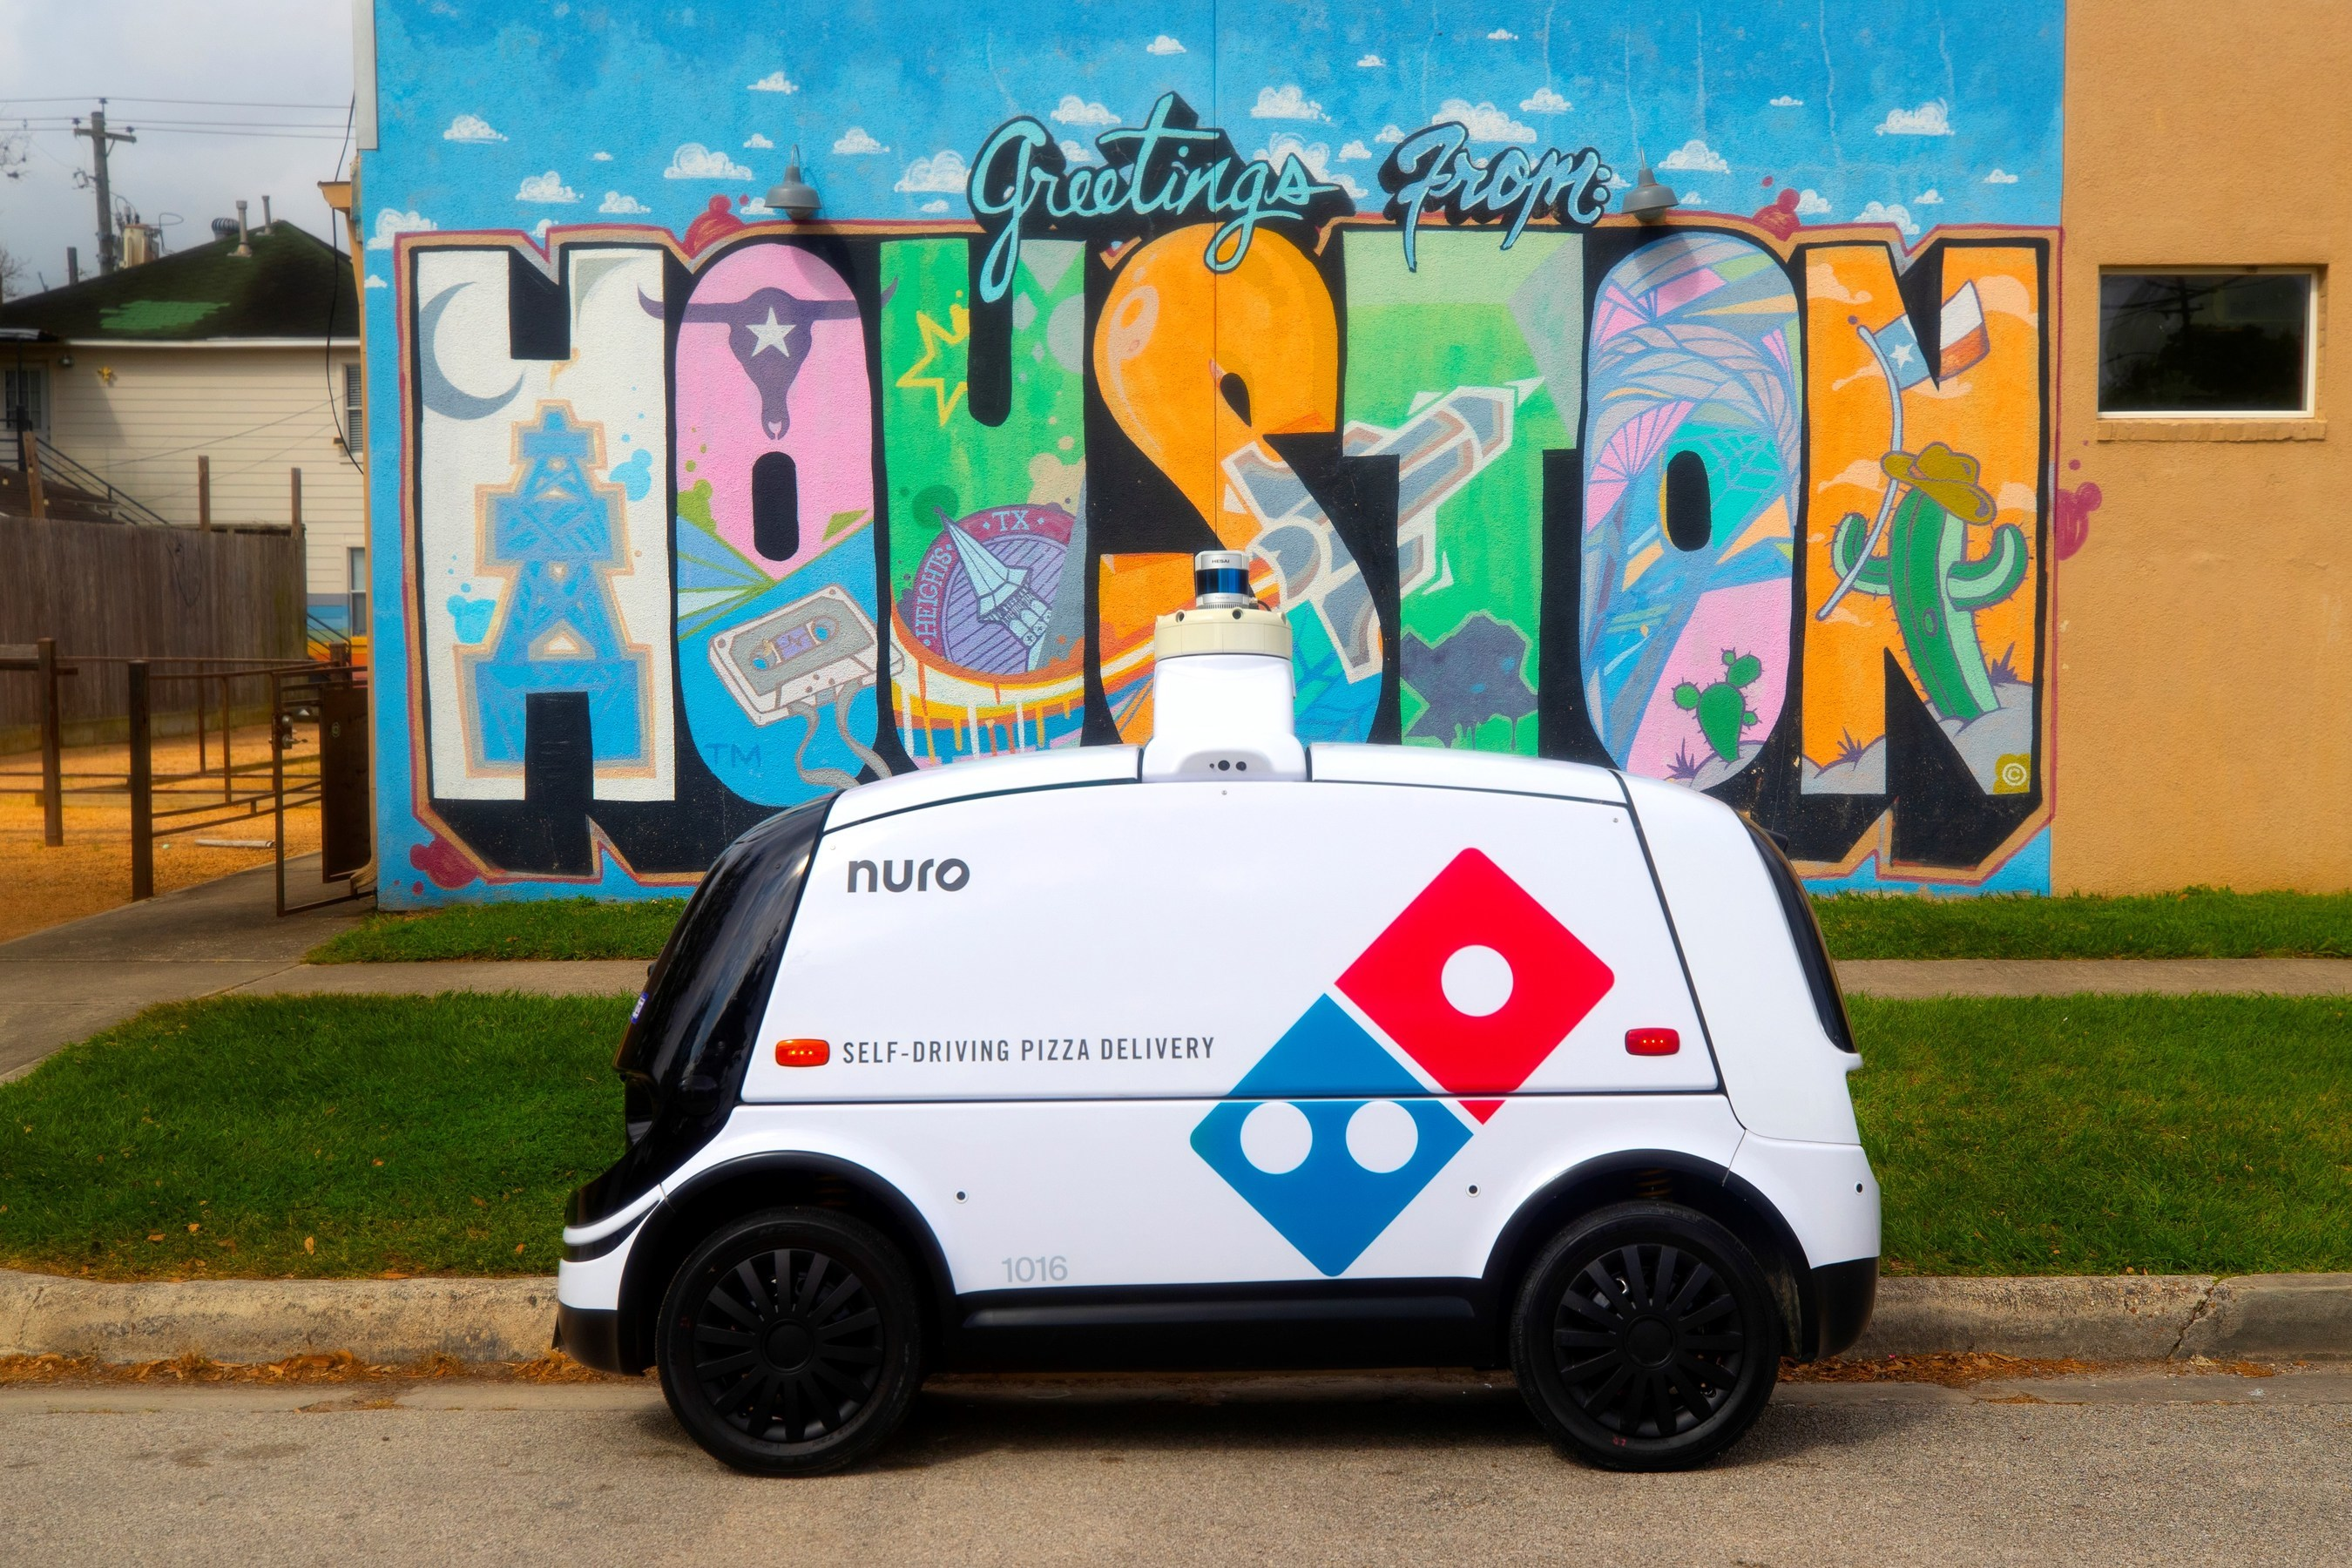 A van-resembling autonomous vehicle with a Domino's logo painted on its side, in front of a Houston mural.